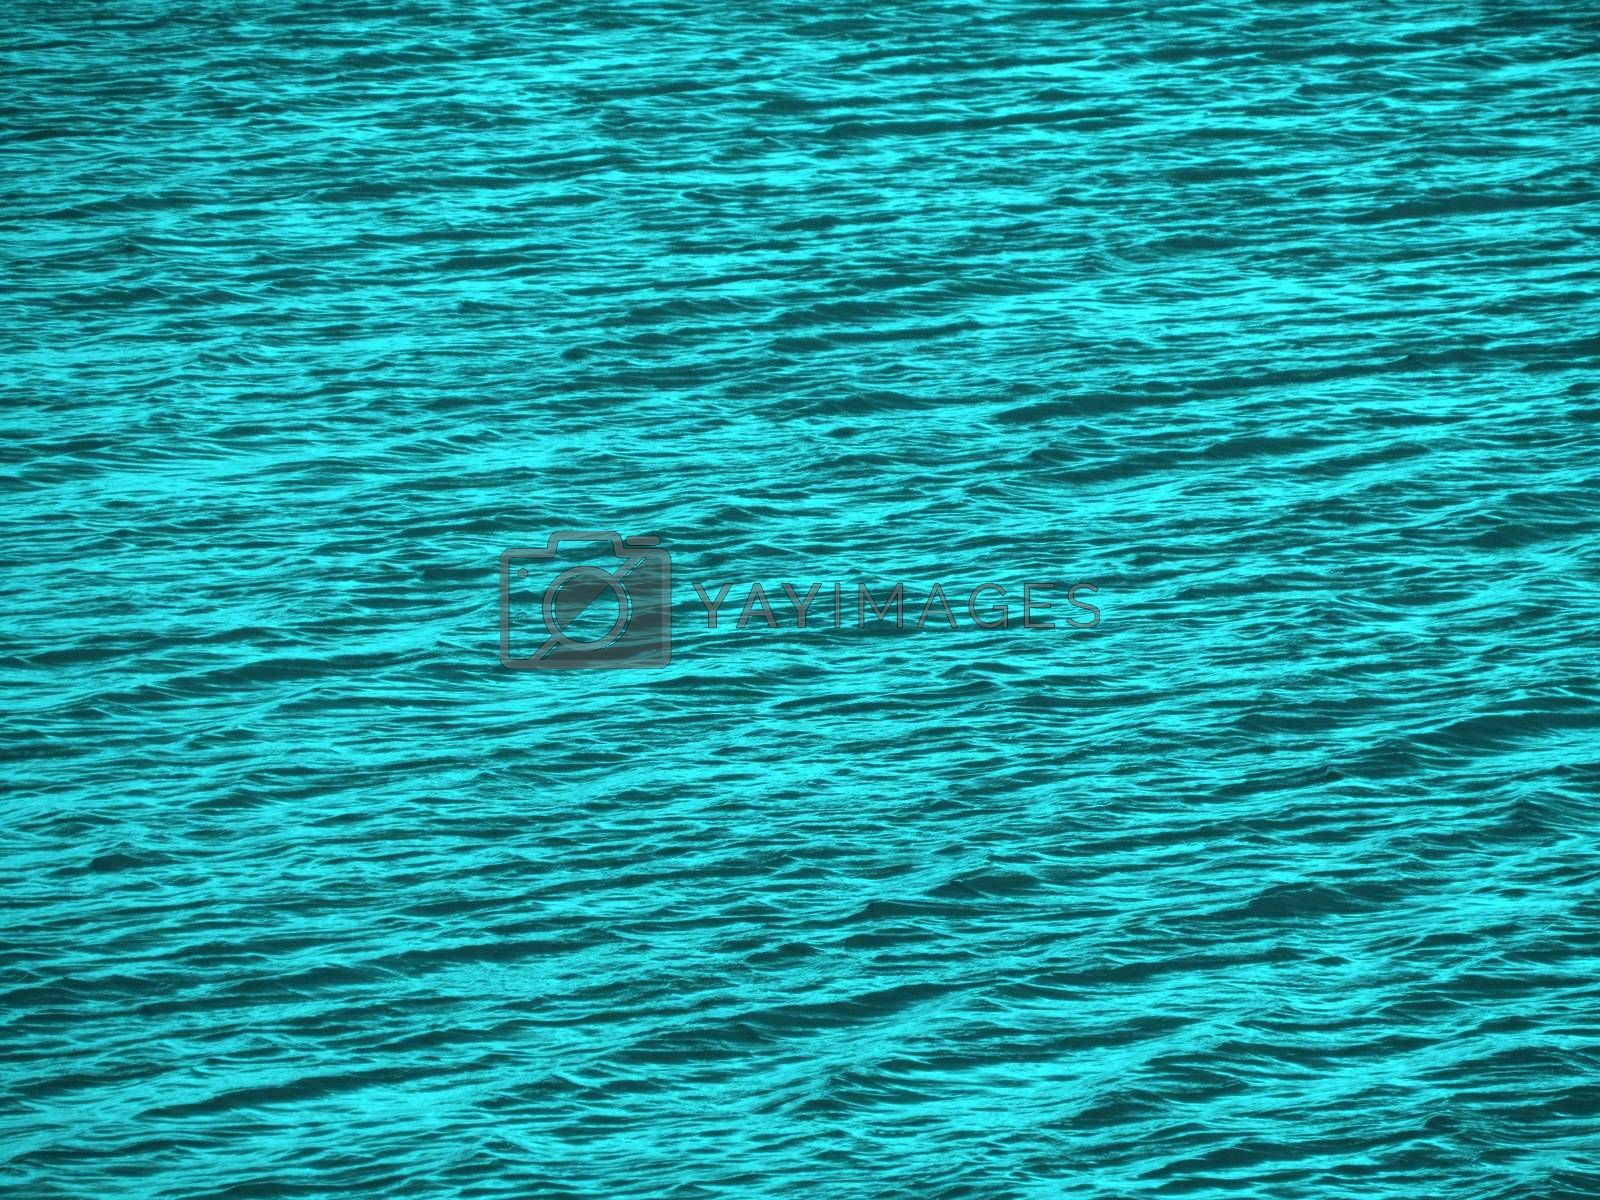 Royalty free image of lake surface in a dull day backdgound color 12 by Aleksey_Gromov